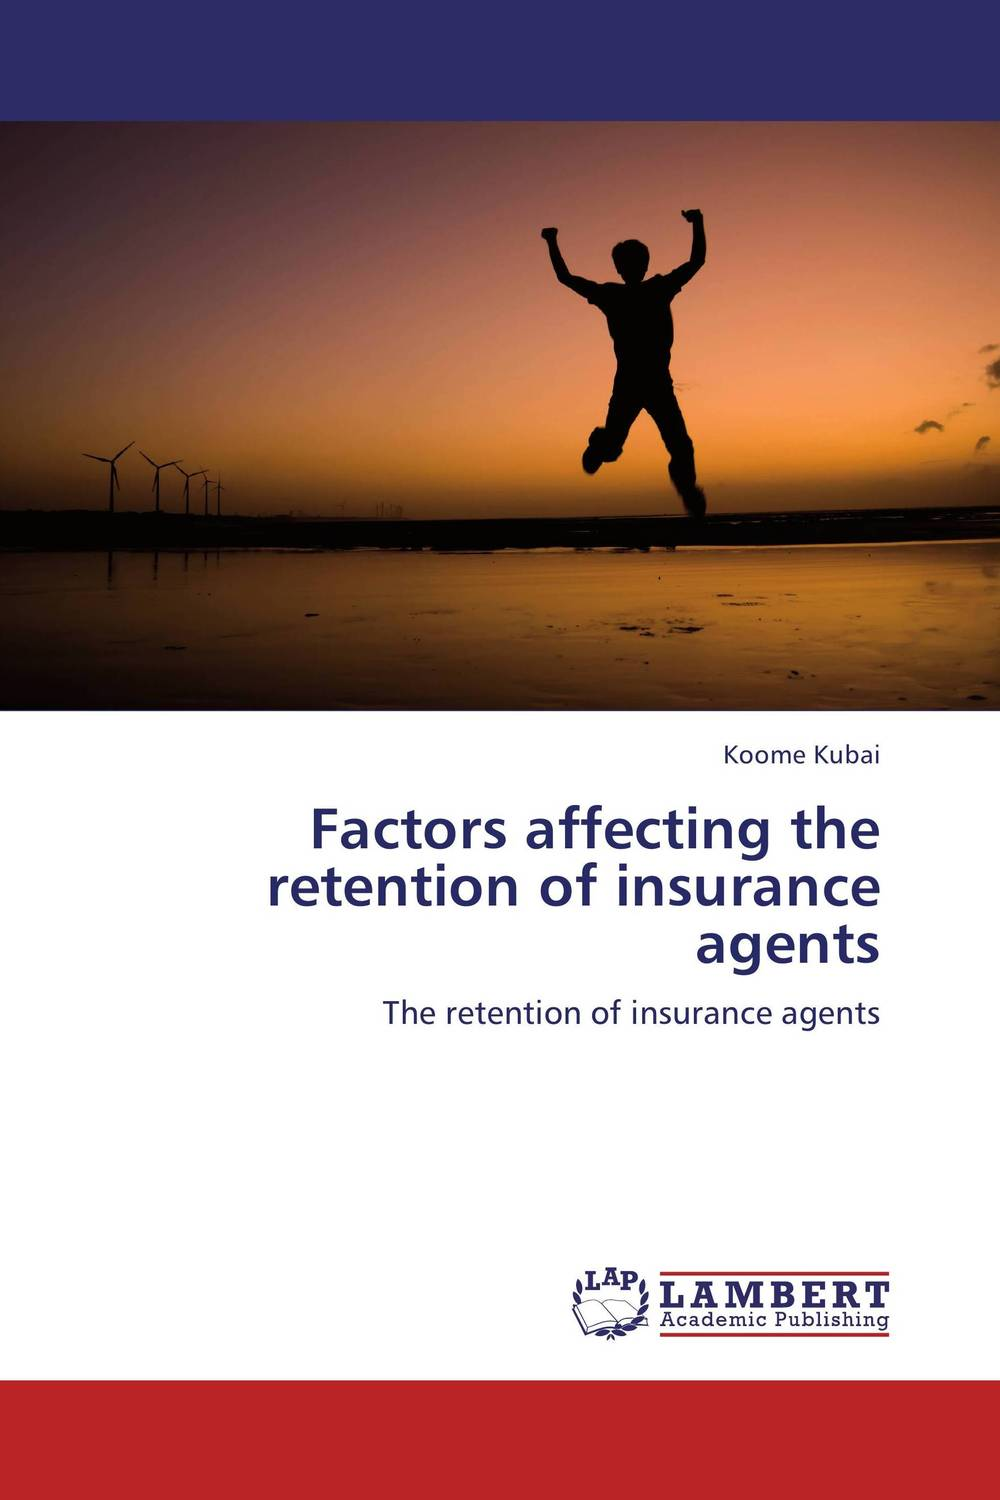 Factors affecting the retention of insurance agents